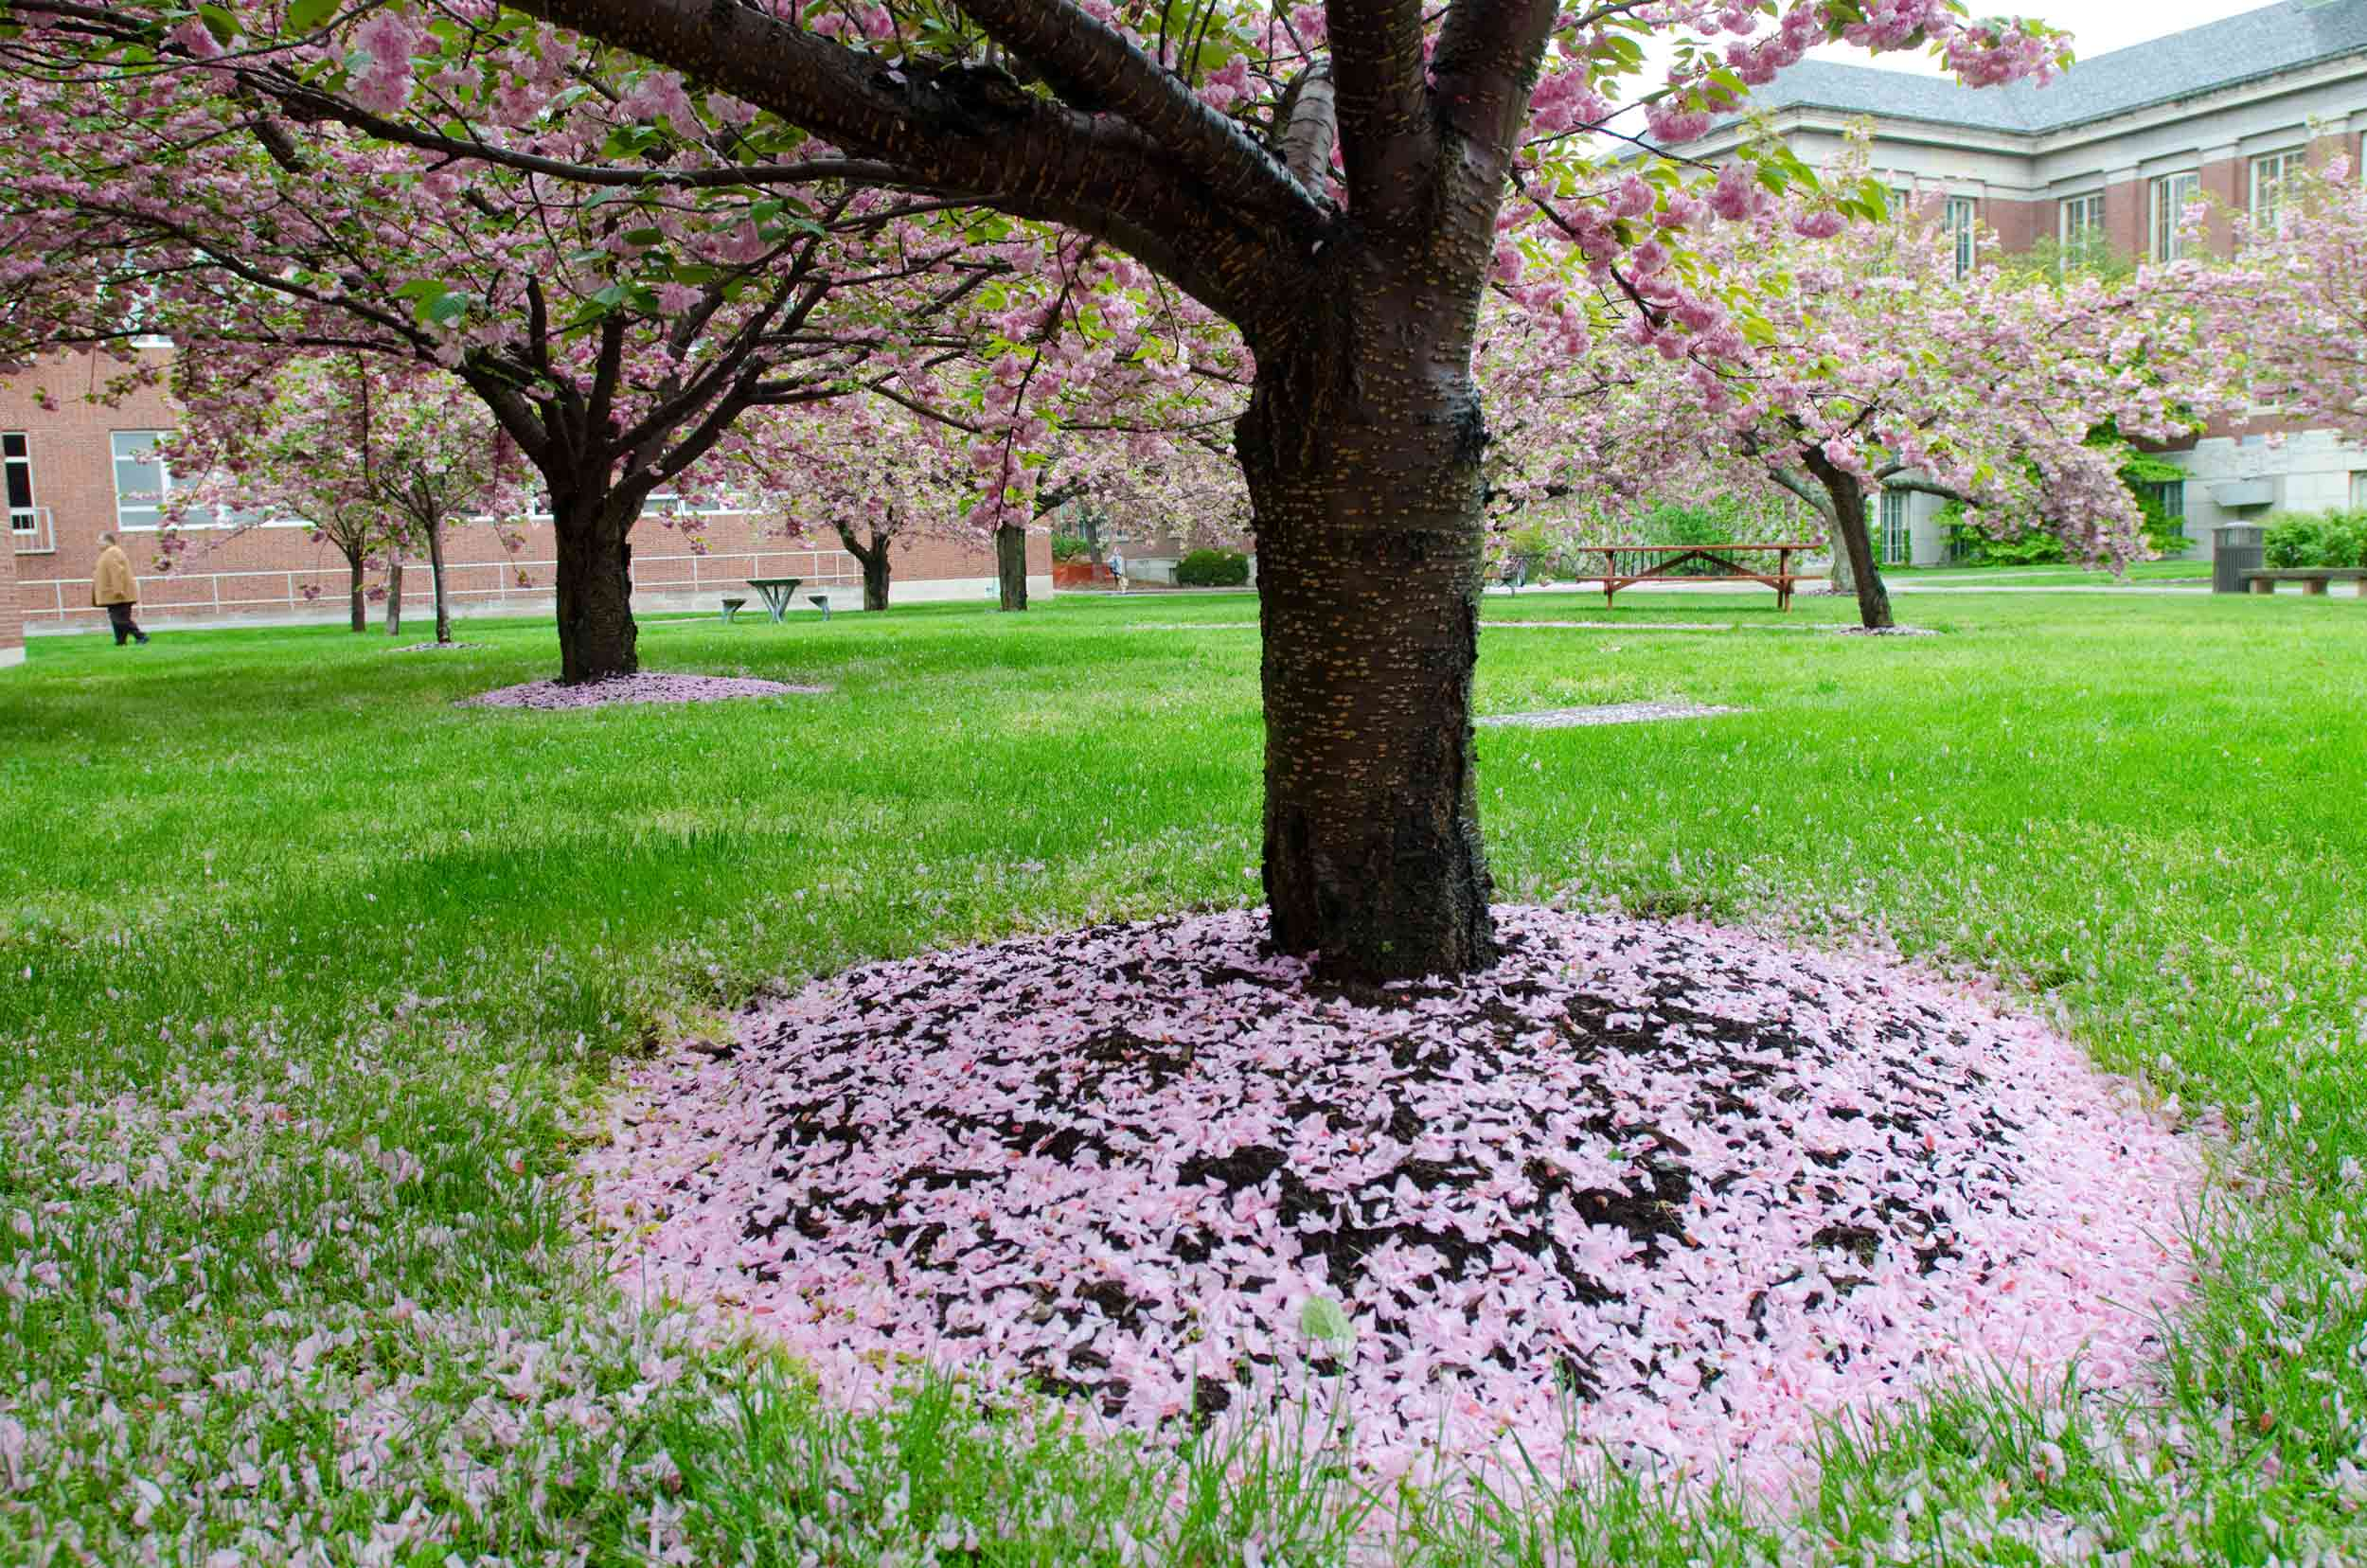 tree with pink flower petals at the base.